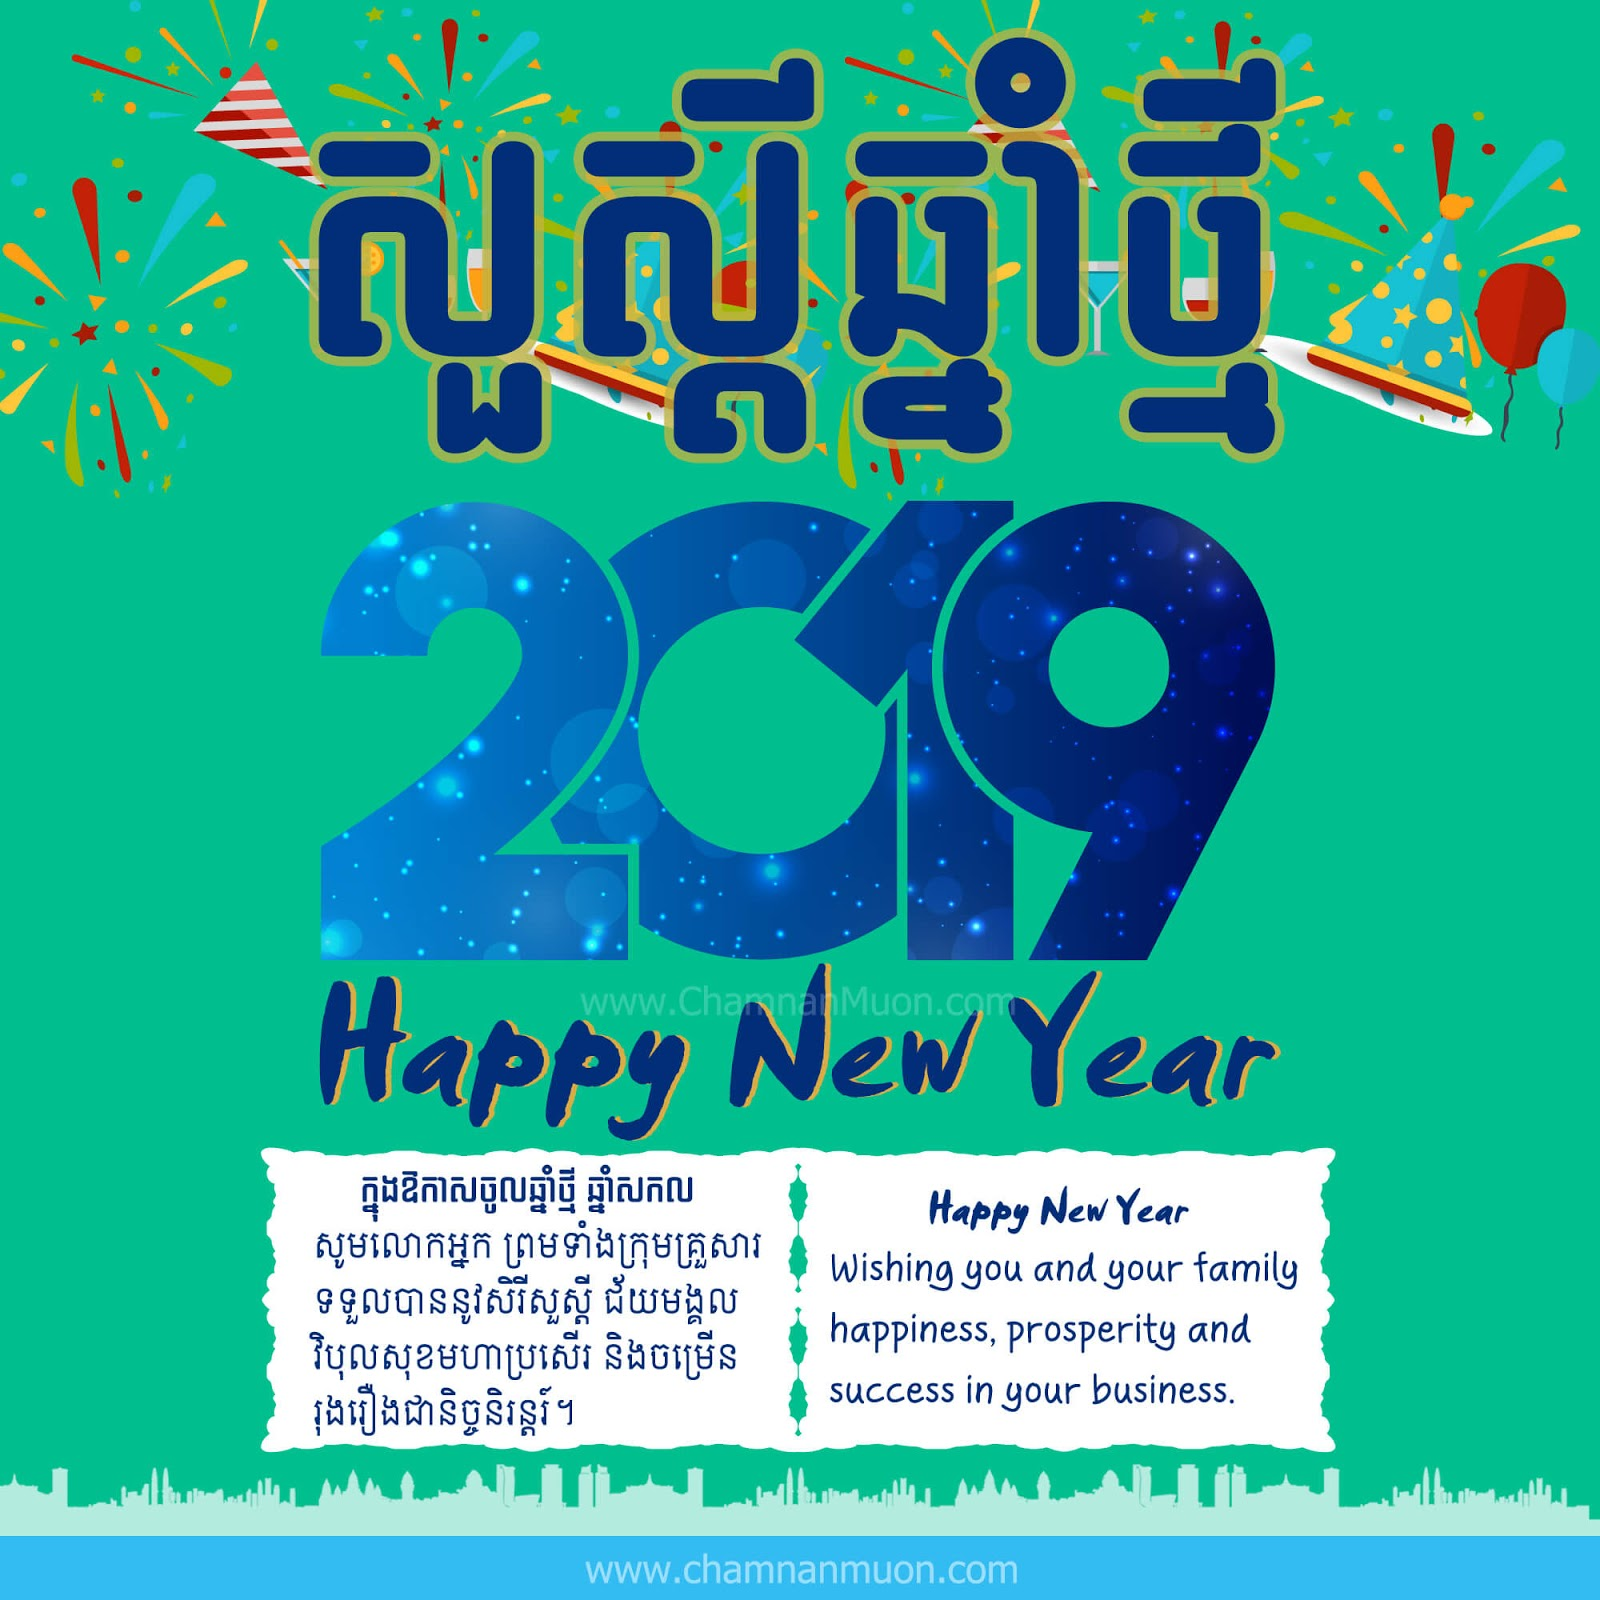 Happy New Year 2019 - Khmer greeting card by Chamnan